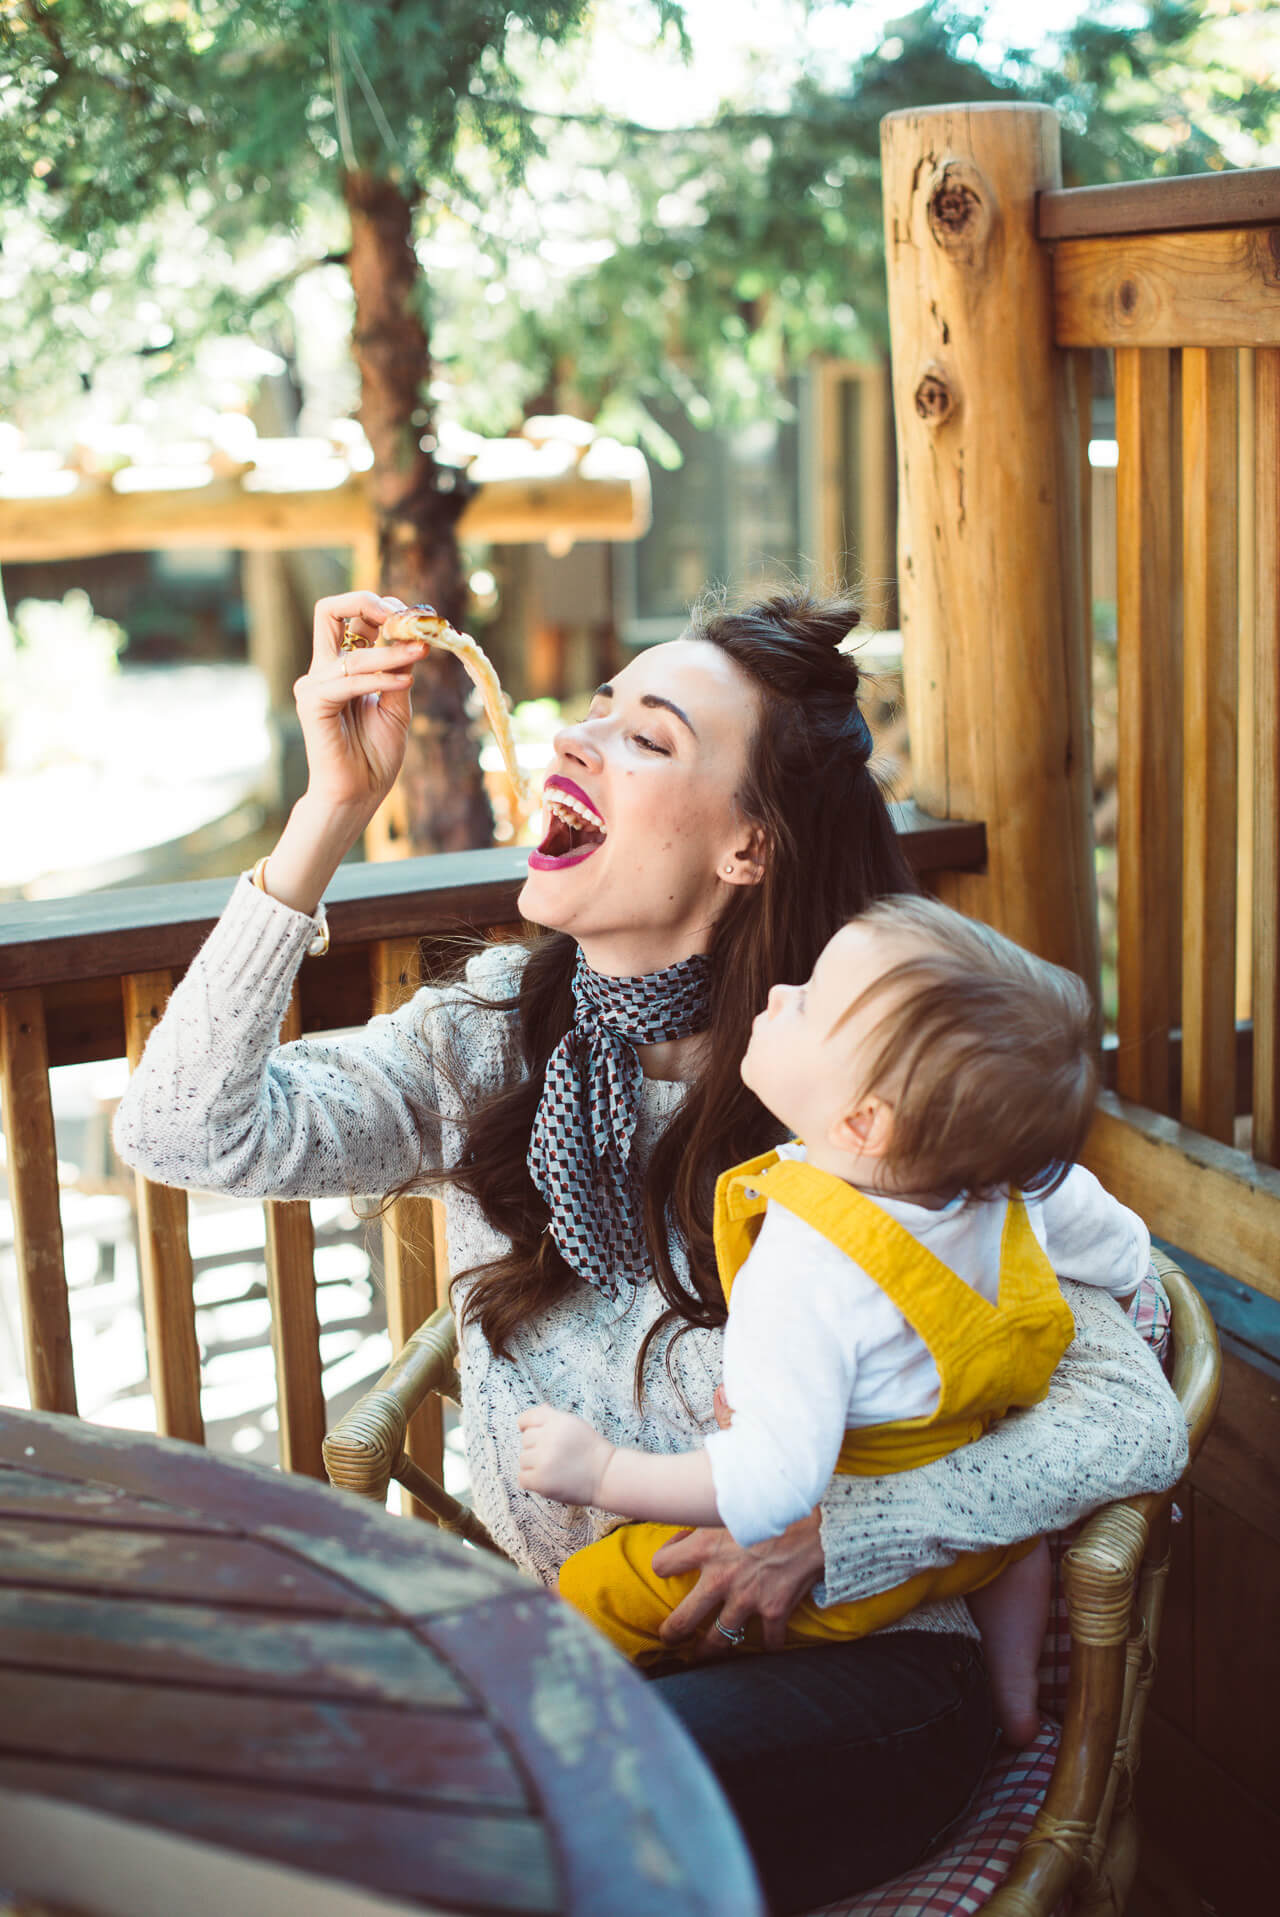 Cute ideas for a photoshoot with your baby